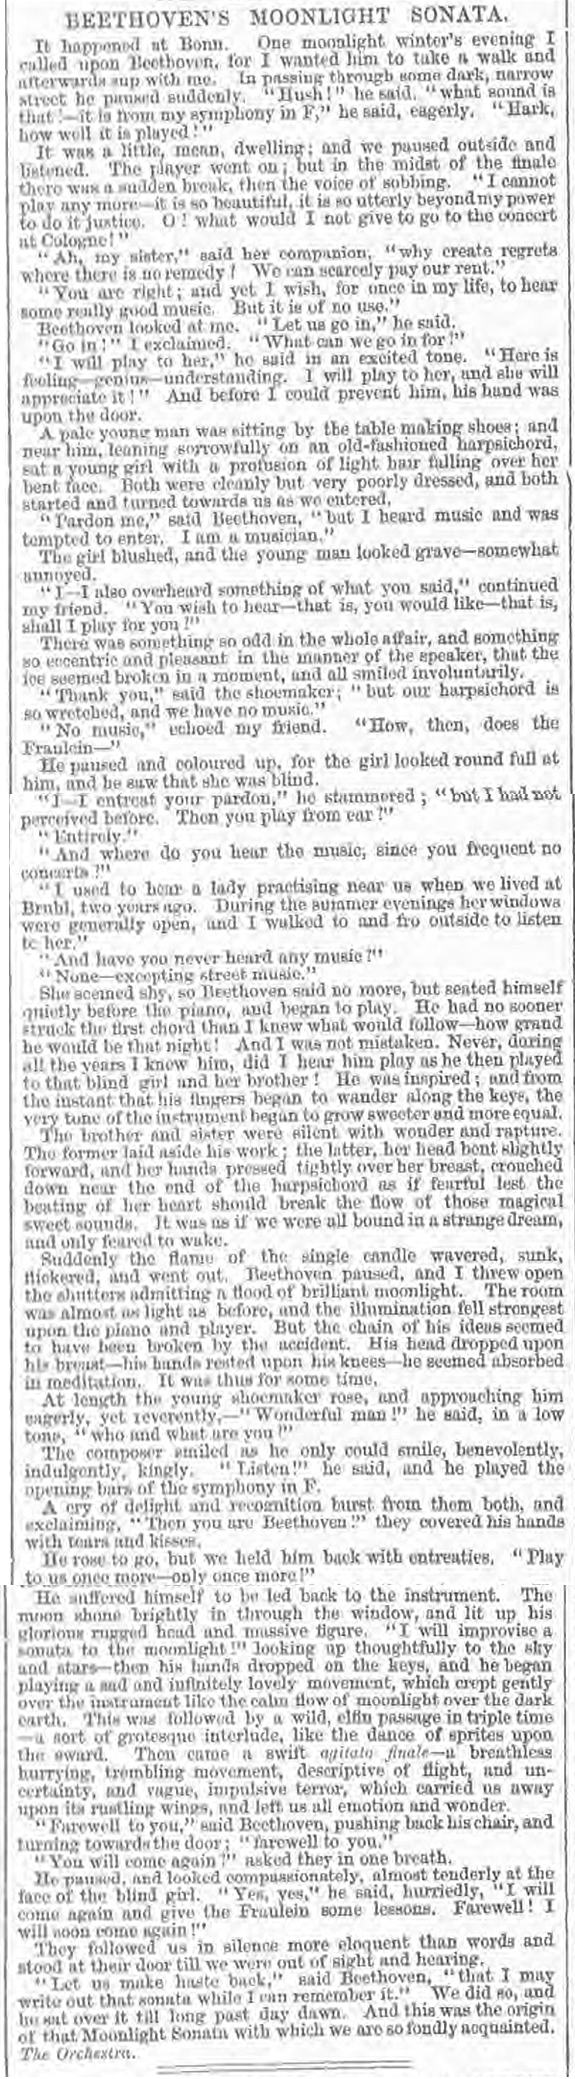 newspaper story about how Beethoven wrote the Moonlight Sonata